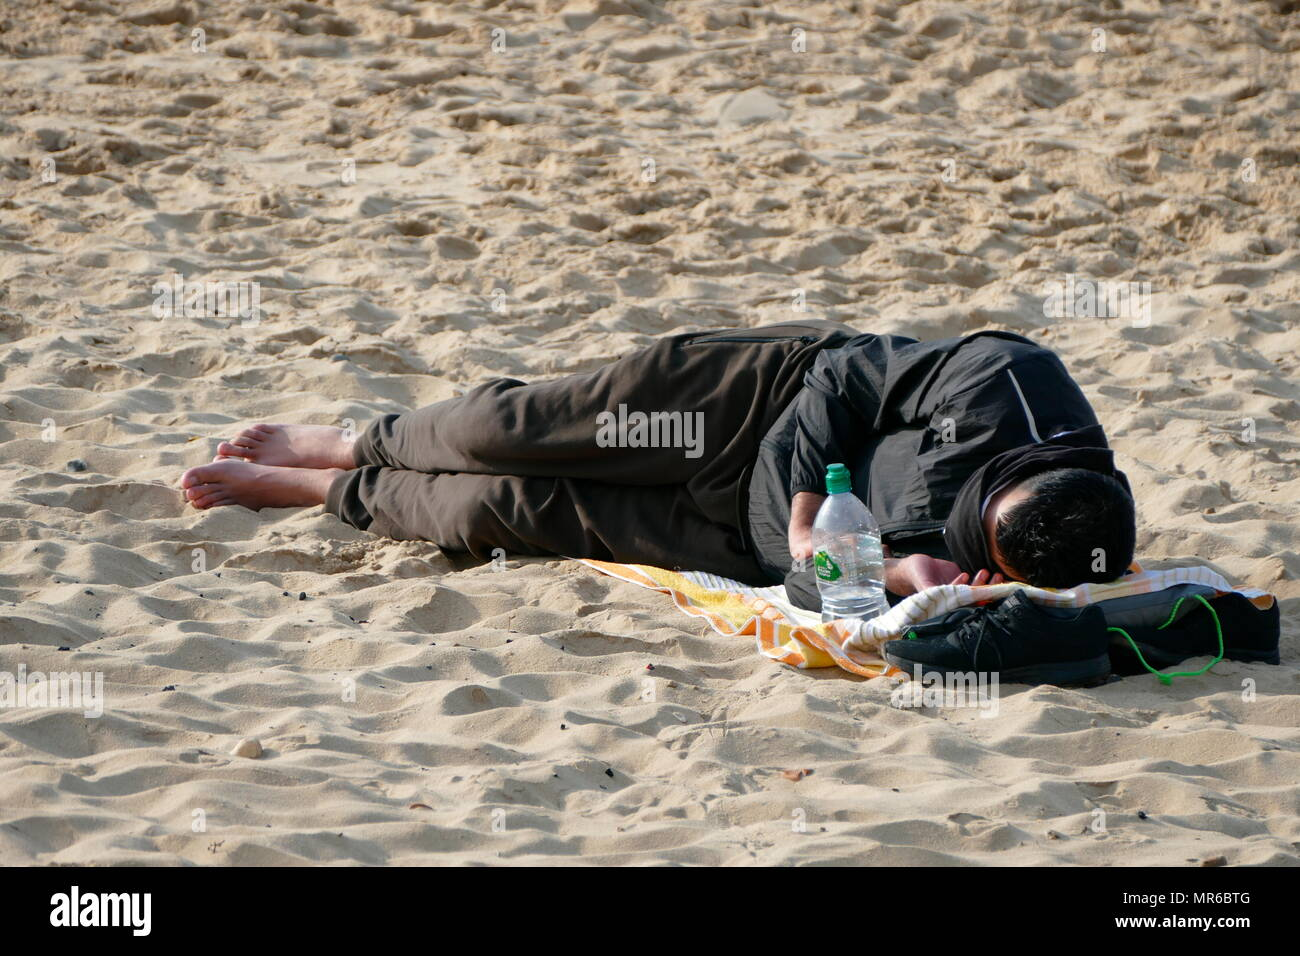 Homeless refugee, sleeps on a beach in Southern England 2017 - Stock Image